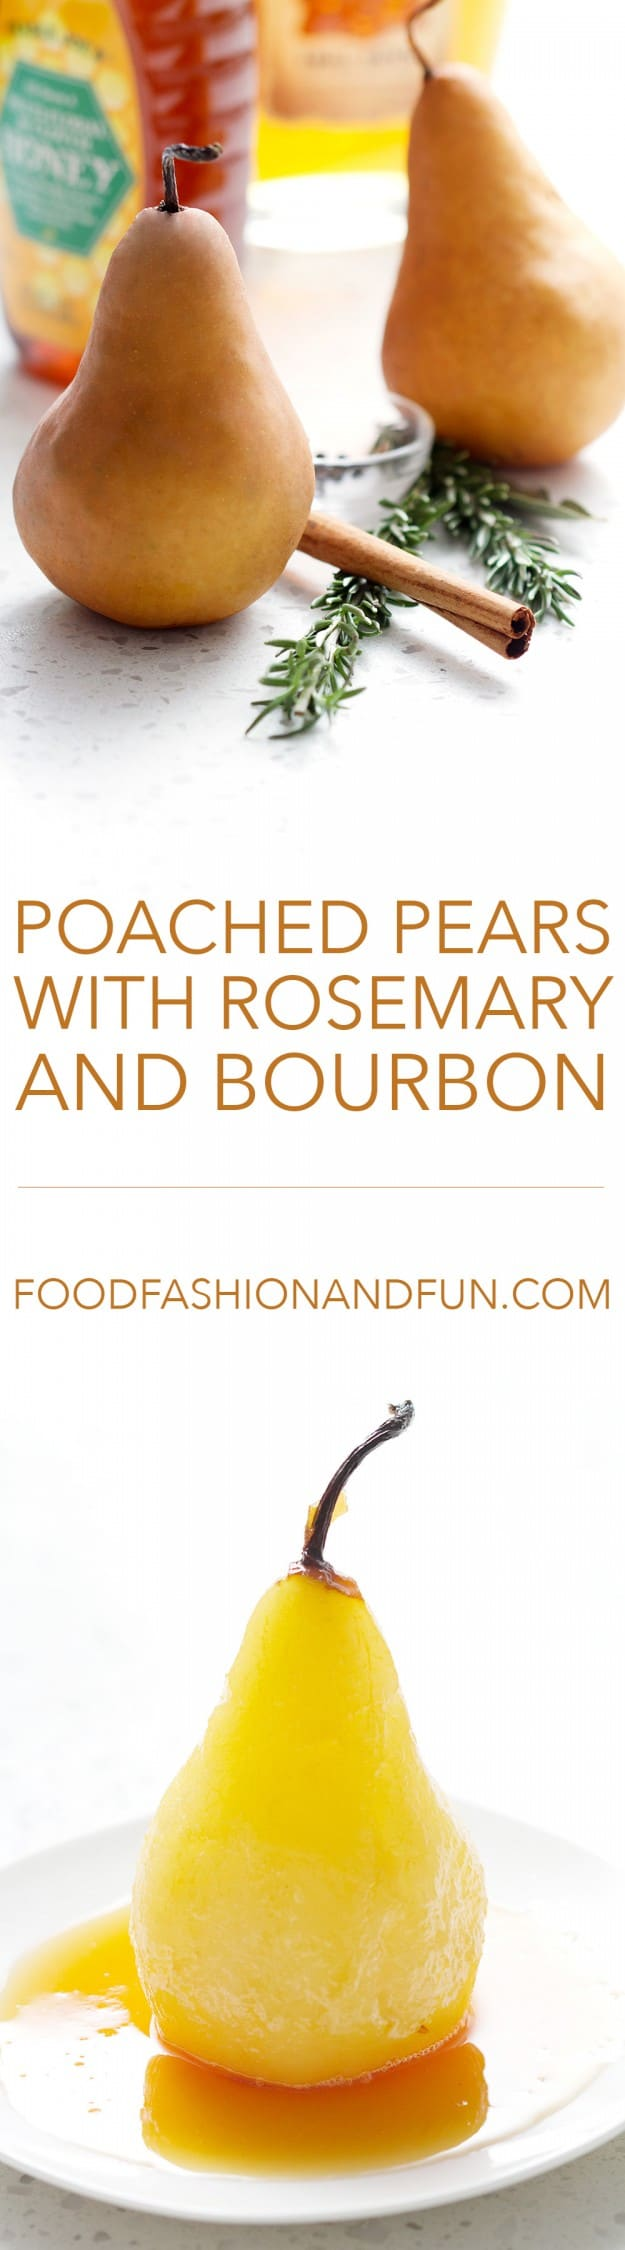 Poached Pears with Rosemary and Bourbon